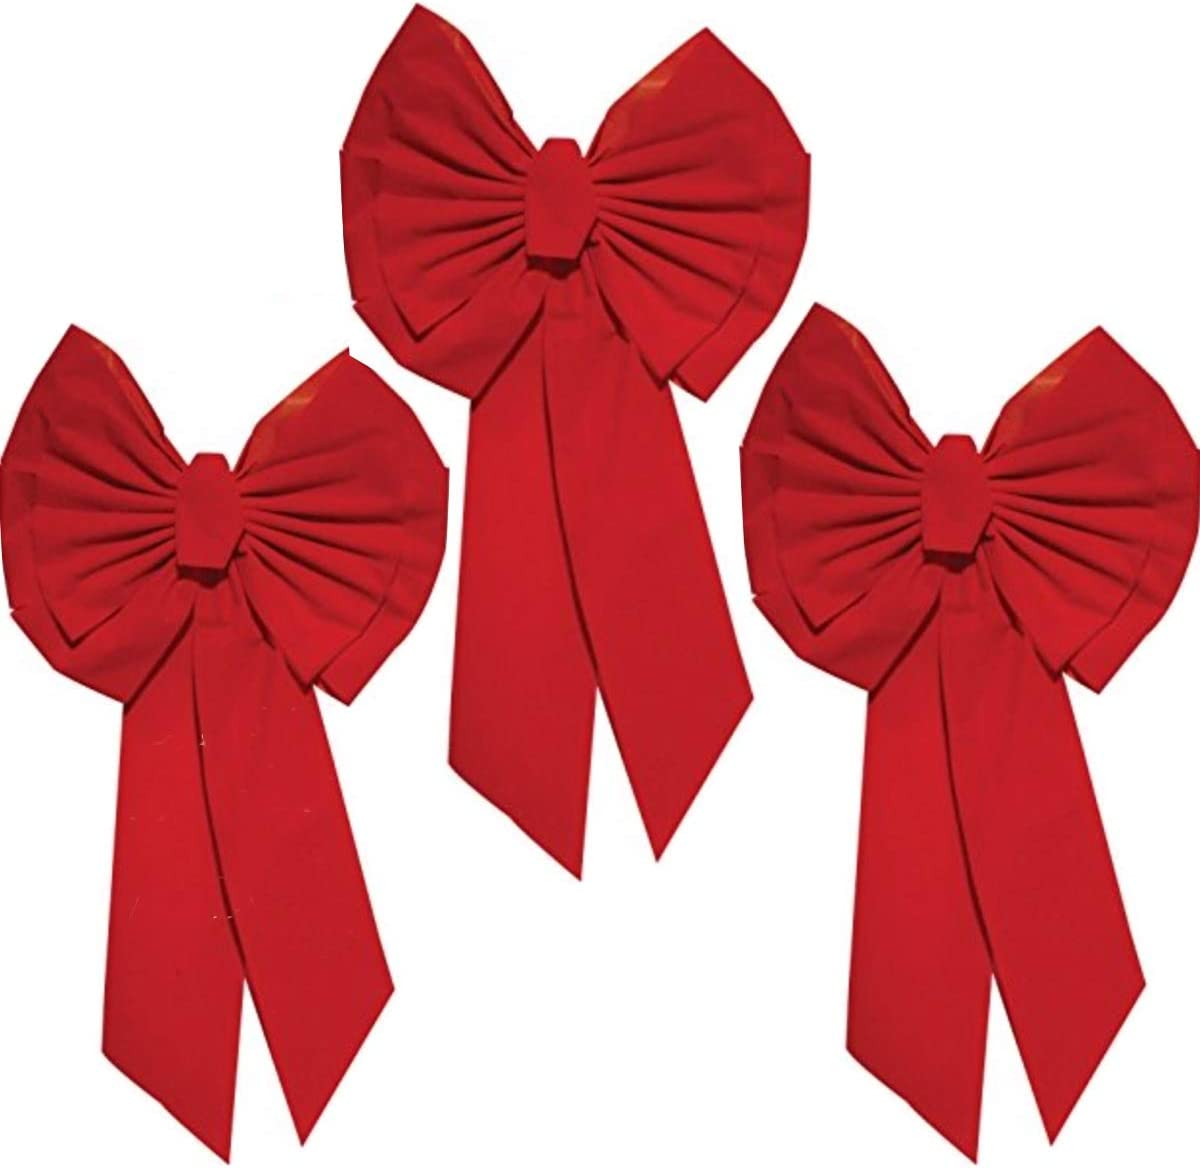 """Rocky Mountain Goods Red Christmas Bow Extra Large 35"""" by 18"""" - 11 Looped Waterproof Velvet Large Outside Bow - Bow for car, Door, House - Jumbo Red Bow with Attachment for Hanging (3)"""